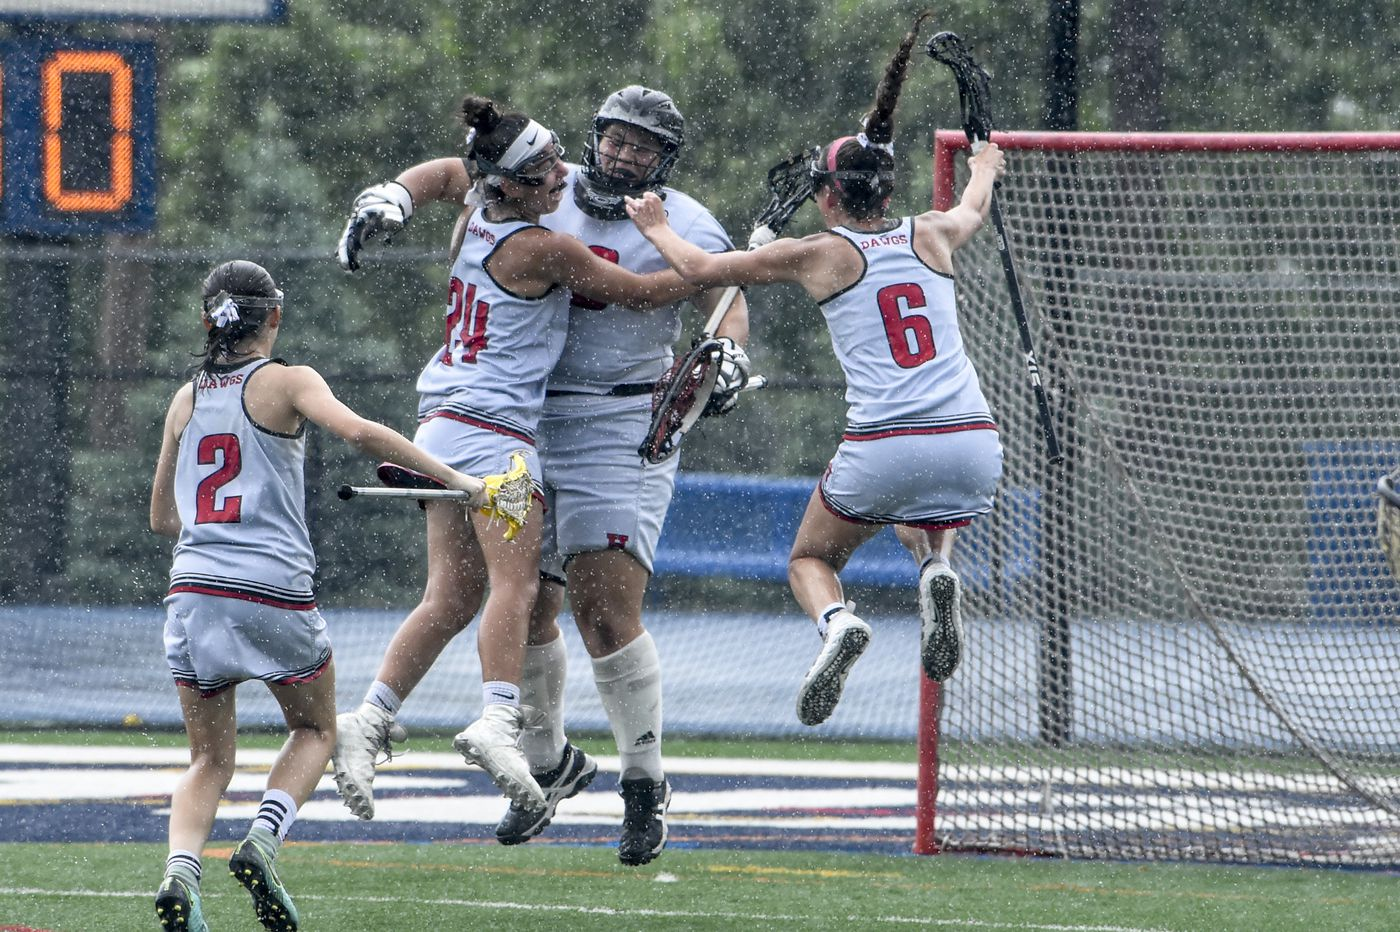 Haddonfield girls win first-ever state lacrosse championship